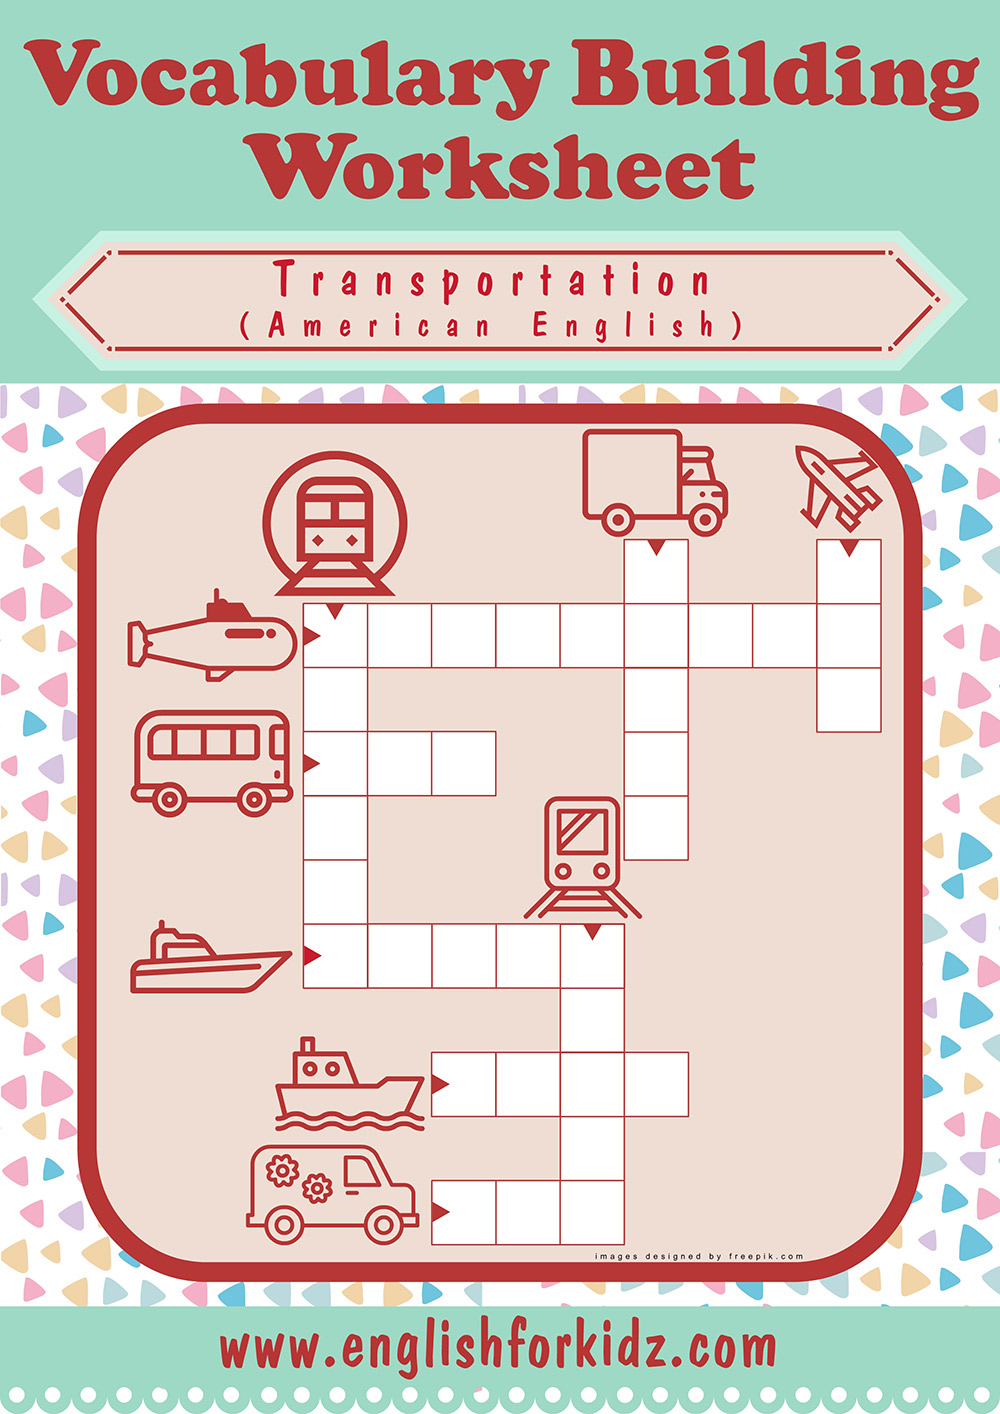 Transportation Worksheets: Crossword Puzzles - Printable Transportation Puzzles